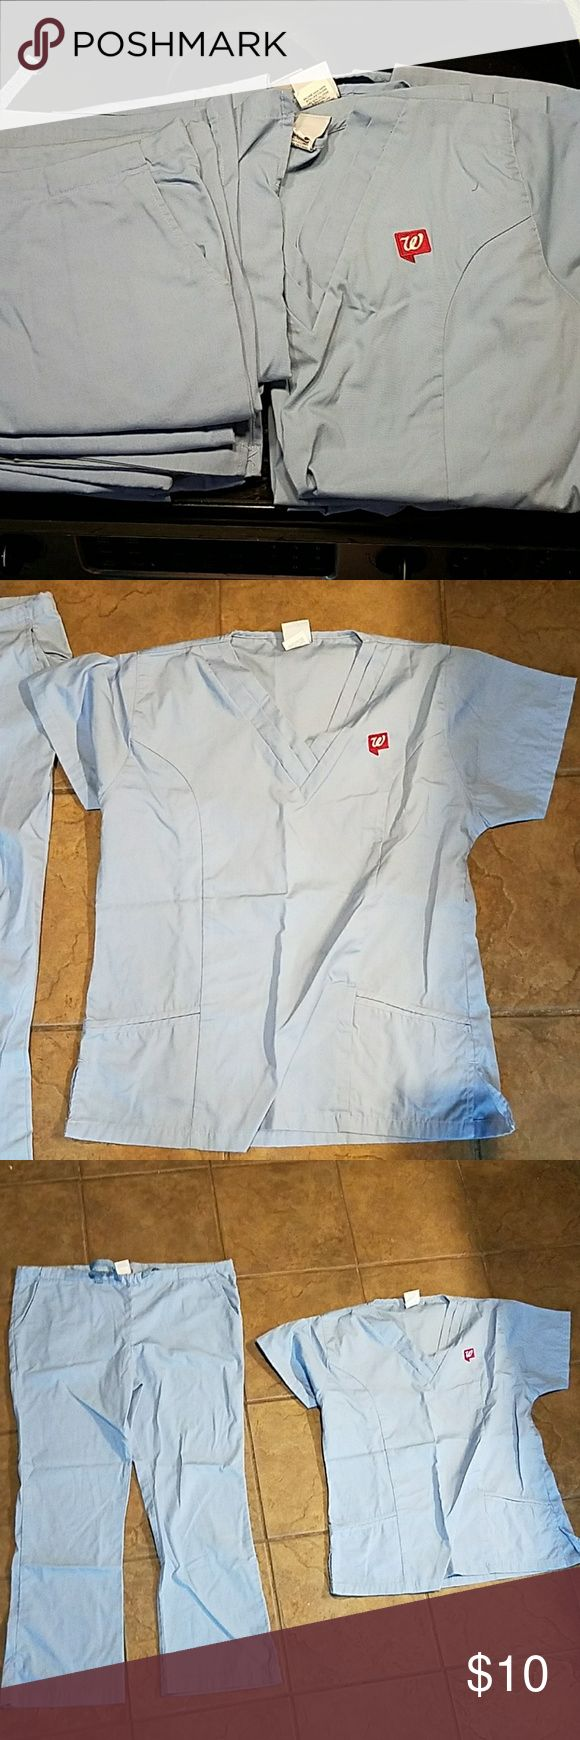 Walgreens Pharmacy Tech Scrubs This is a bundle of scrubs. Selling them all together, since I dont need them anymore. They are In used condition.  Will not seperate, just selling all together really cheap. Different sizes of pants in the bundle. scrub tops- 5 medium tops. Scrub pants- 1- Medium Regular,  2-Medium Tall,  and 1- Medium Maternity.  The tops have the small Walgreens emblem on them (could cover easily), and the pants do not have a logo. walgreens Other